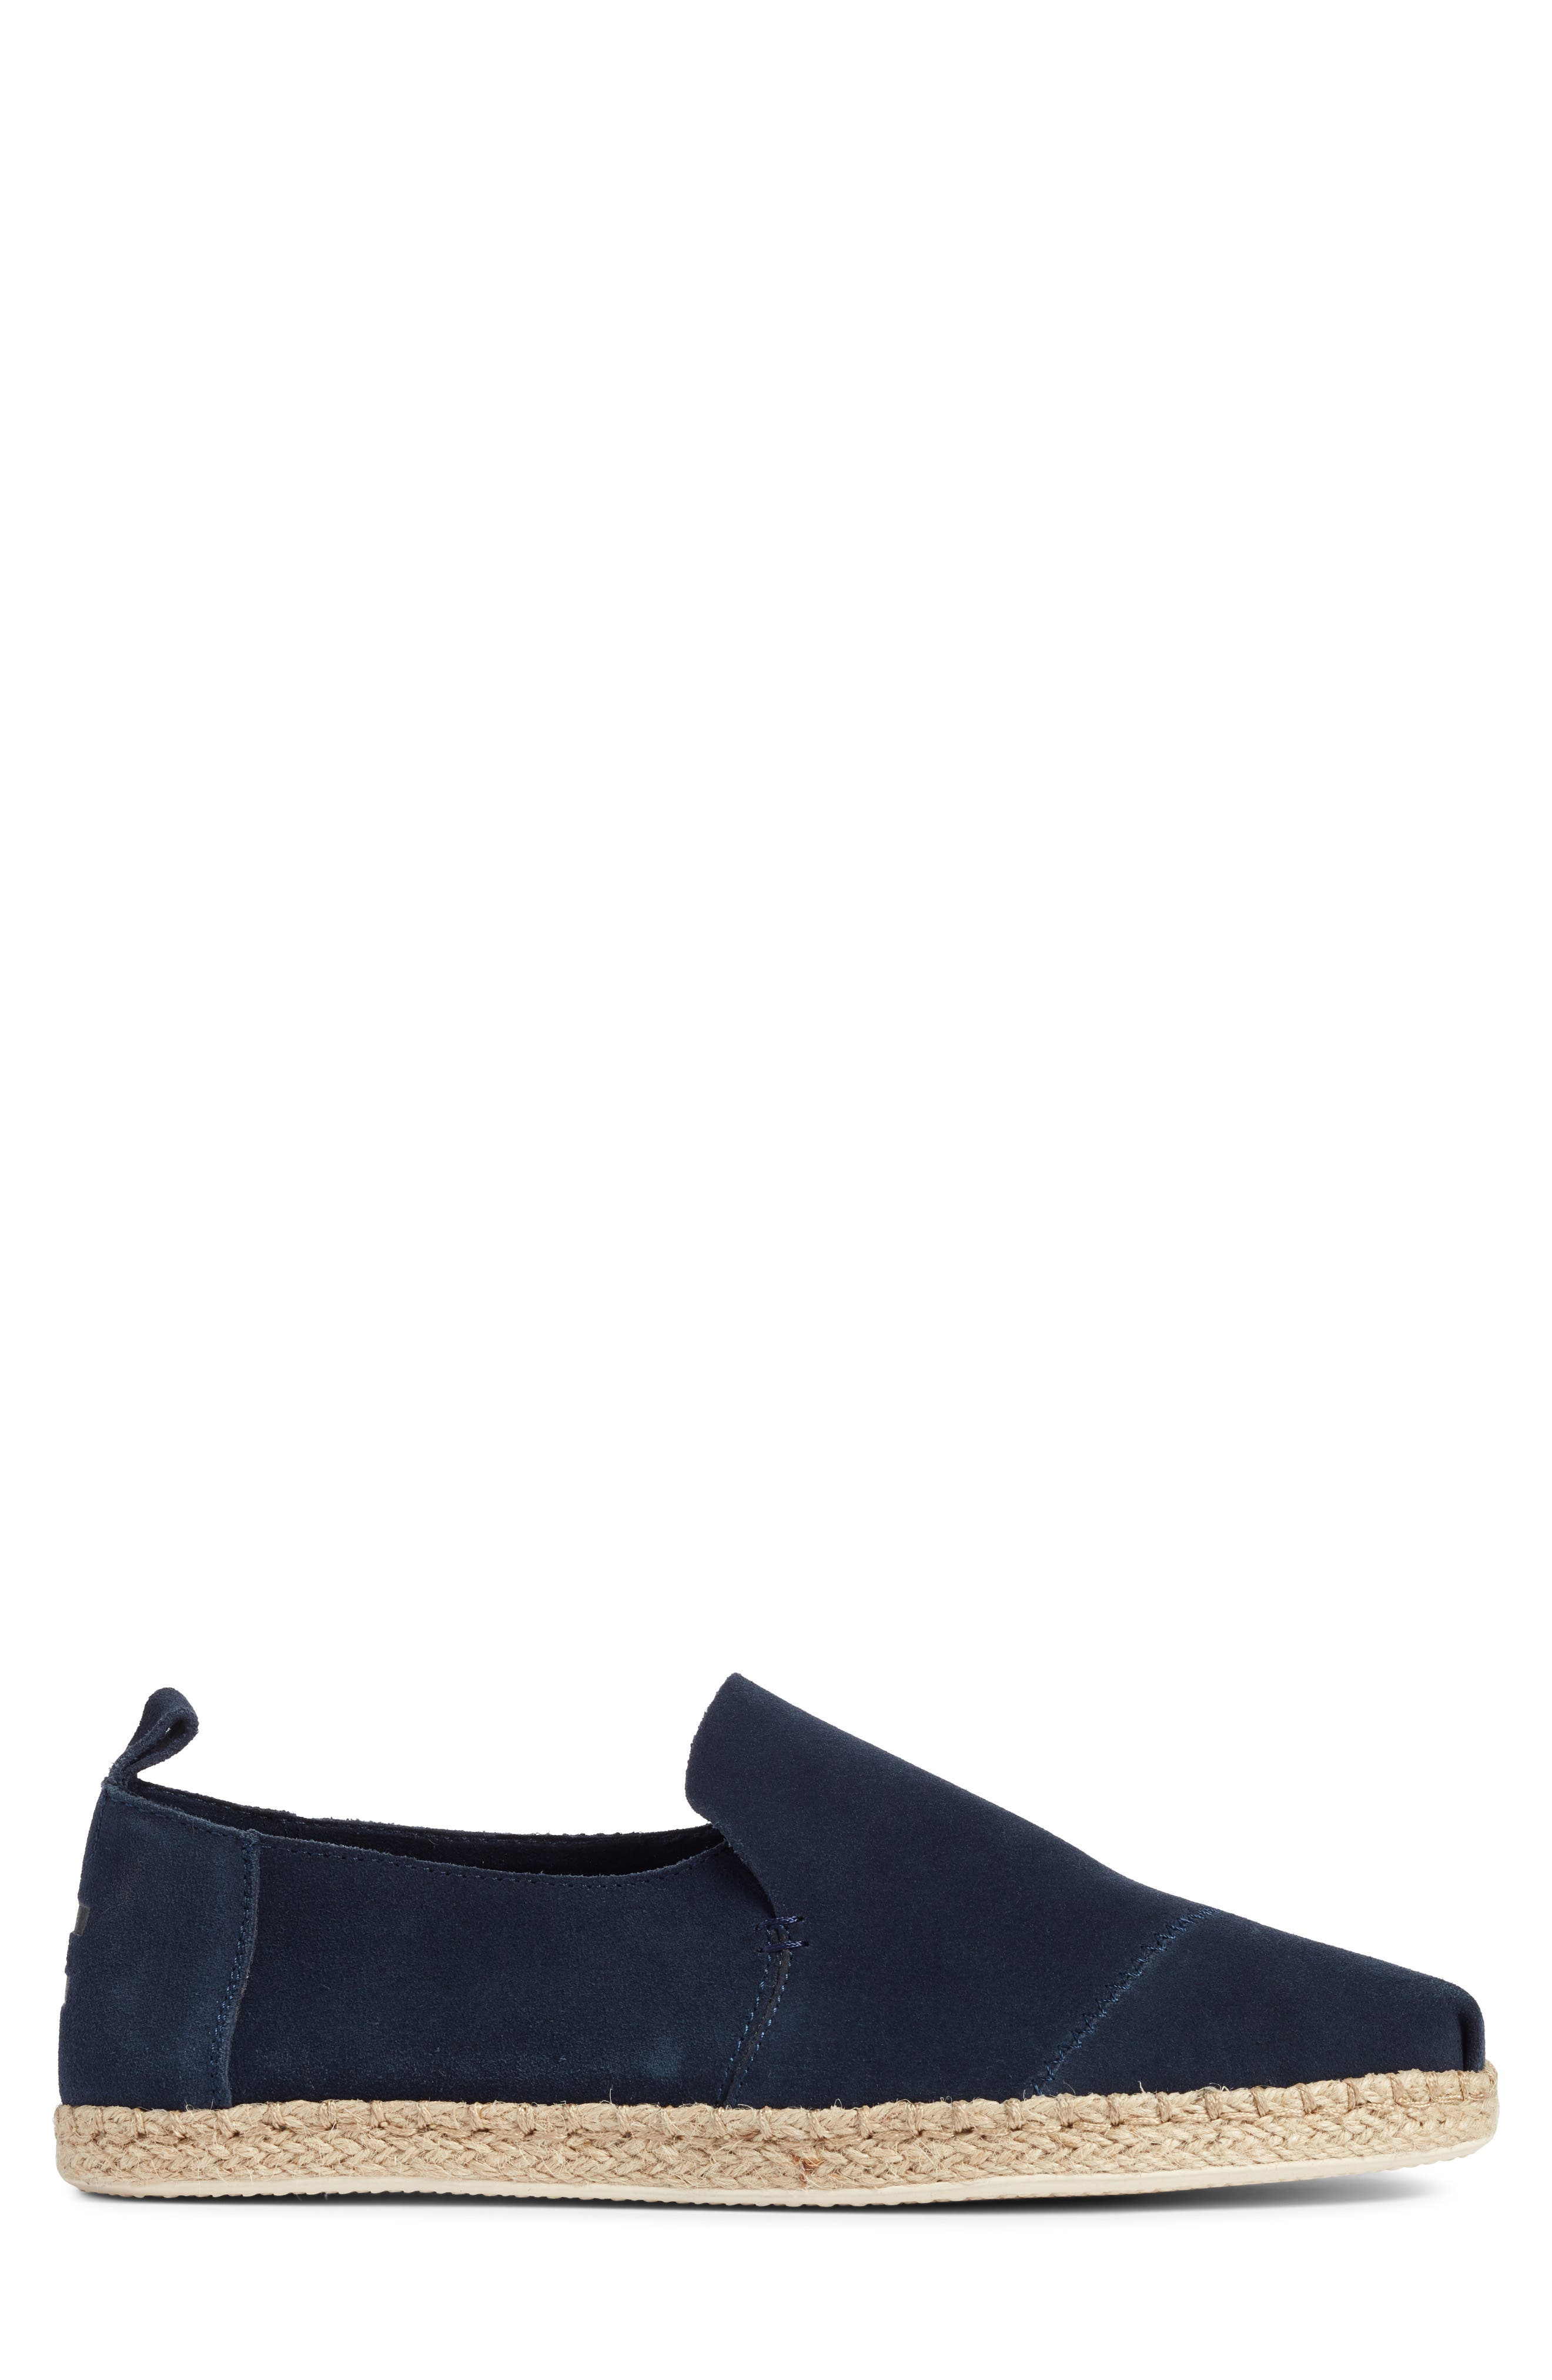 Deconstructed Alpargata,                             Alternate thumbnail 3, color,                             Navy Suede